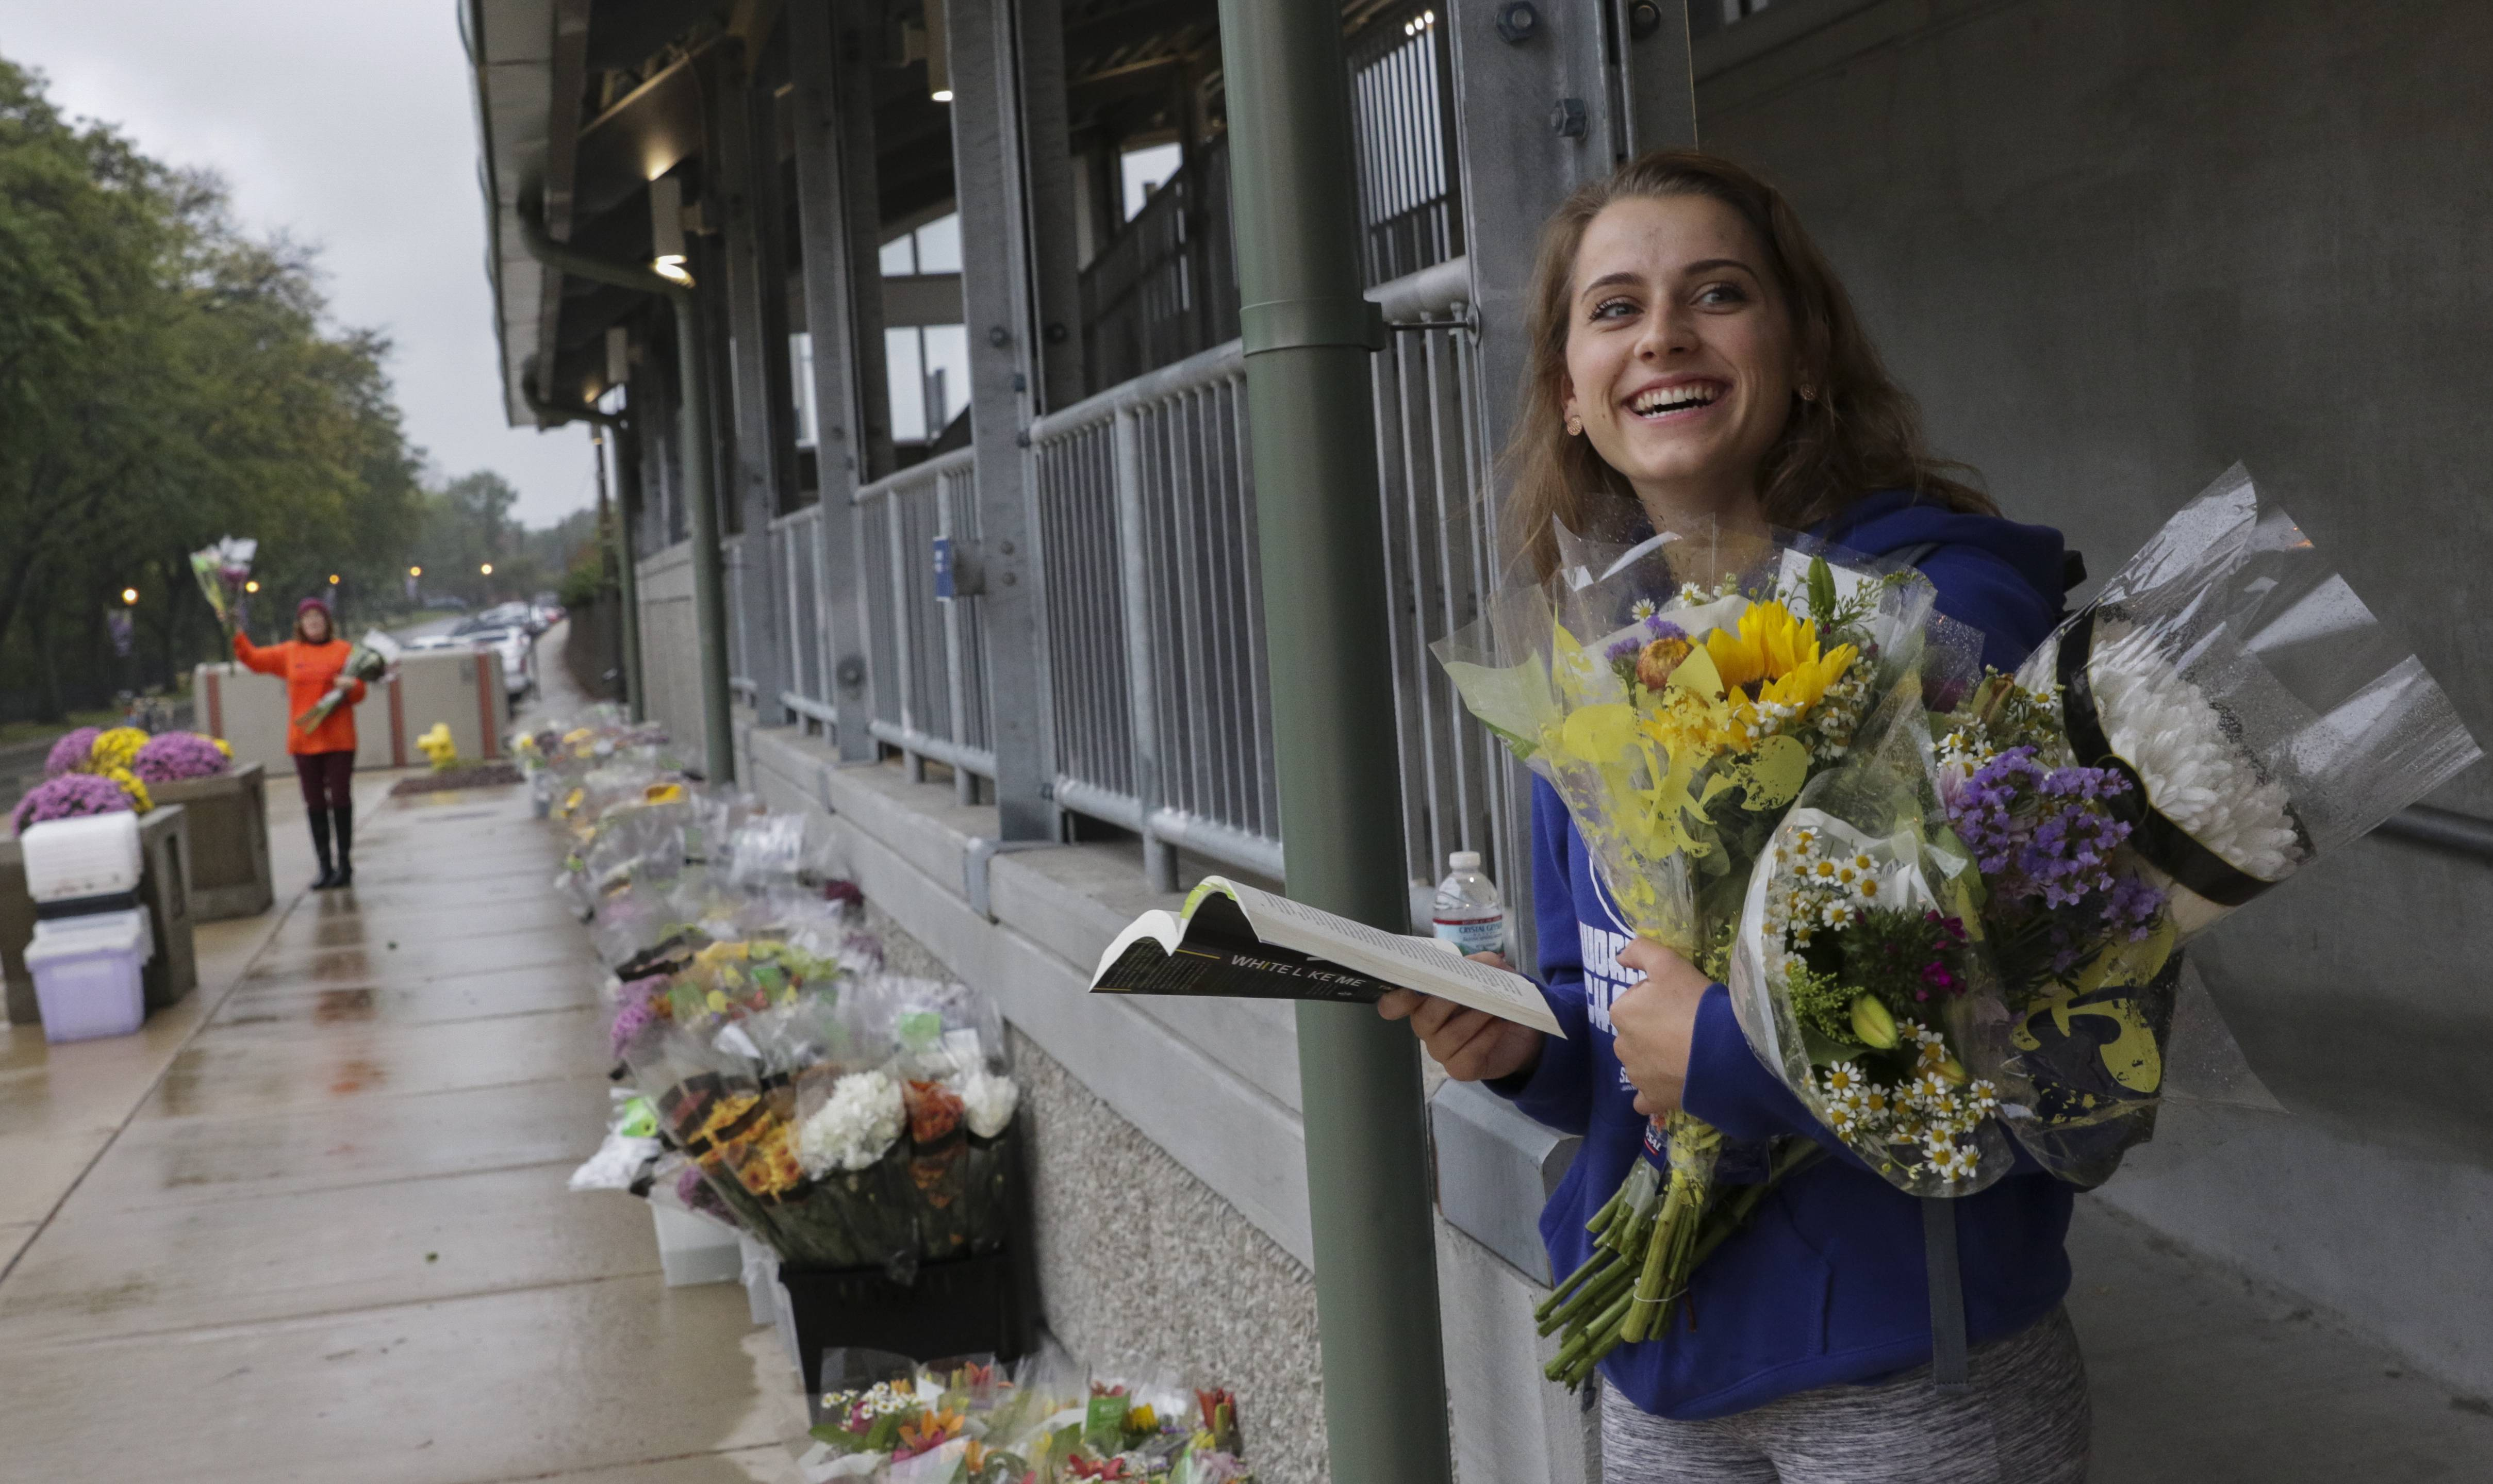 Janah Sprenger is all smiles Wednesday after getting free bouquets from FTD and Phillip's Flowers at the Lombard Metra station. The flower giveaway was part of the Petal It Forward campaign.